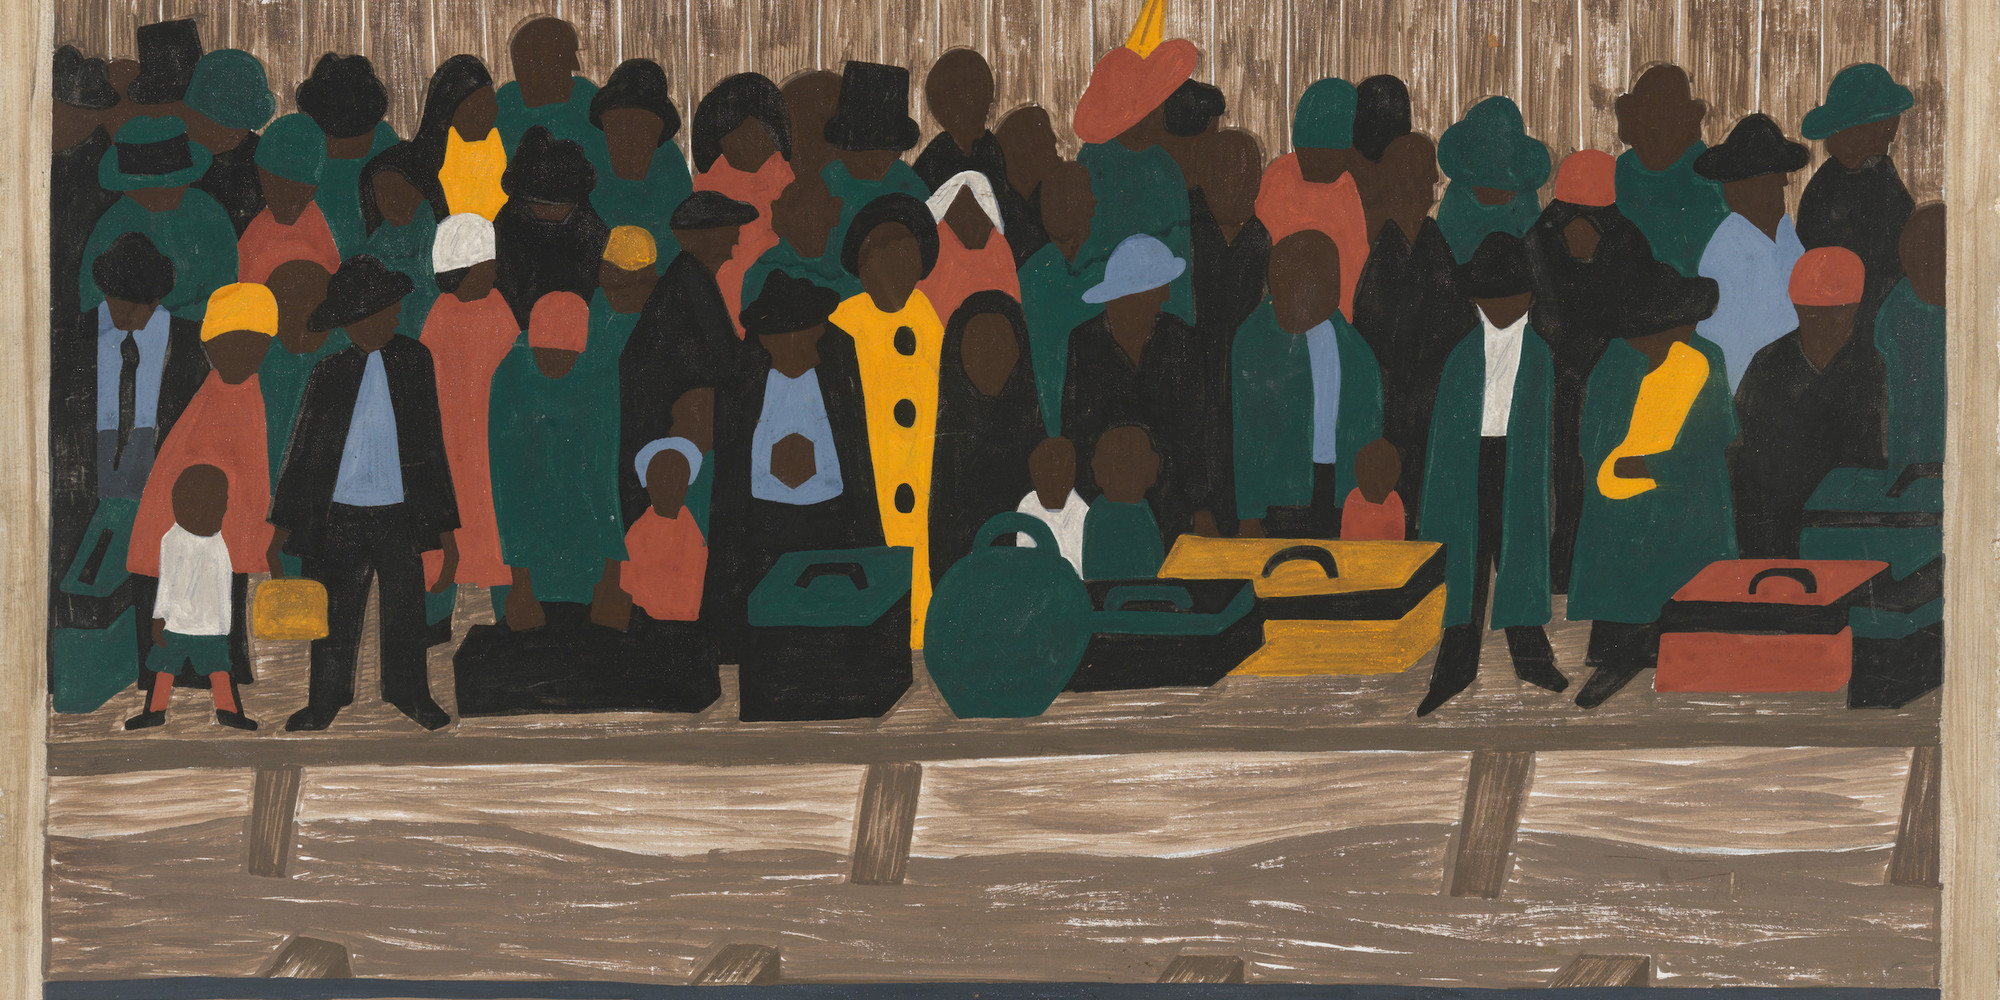 "Jacob Lawrence. And the migrants kept coming. 1940–41. Casein tempera on hardboard, 12 × 18"" (30.5 × 45.7 cm). Gift of Mrs. David M. Levy. © 2020 Jacob Lawrence/Artists Rights Society (ARS), New York"